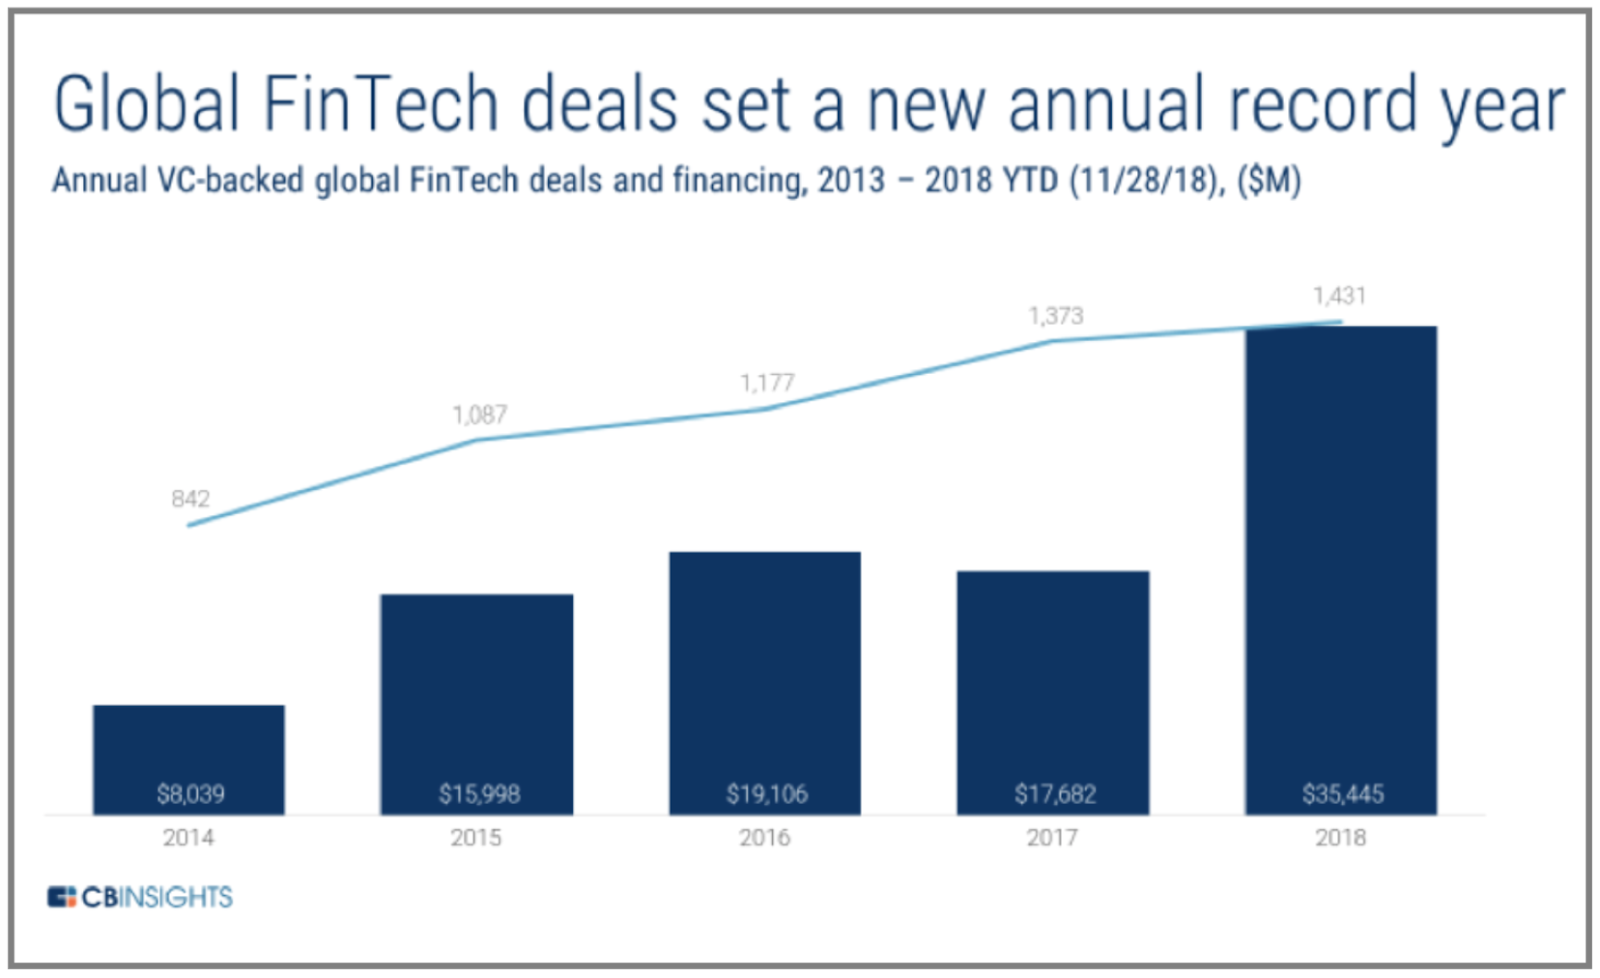 Upward trend of annual VC-backed global FinTech deals